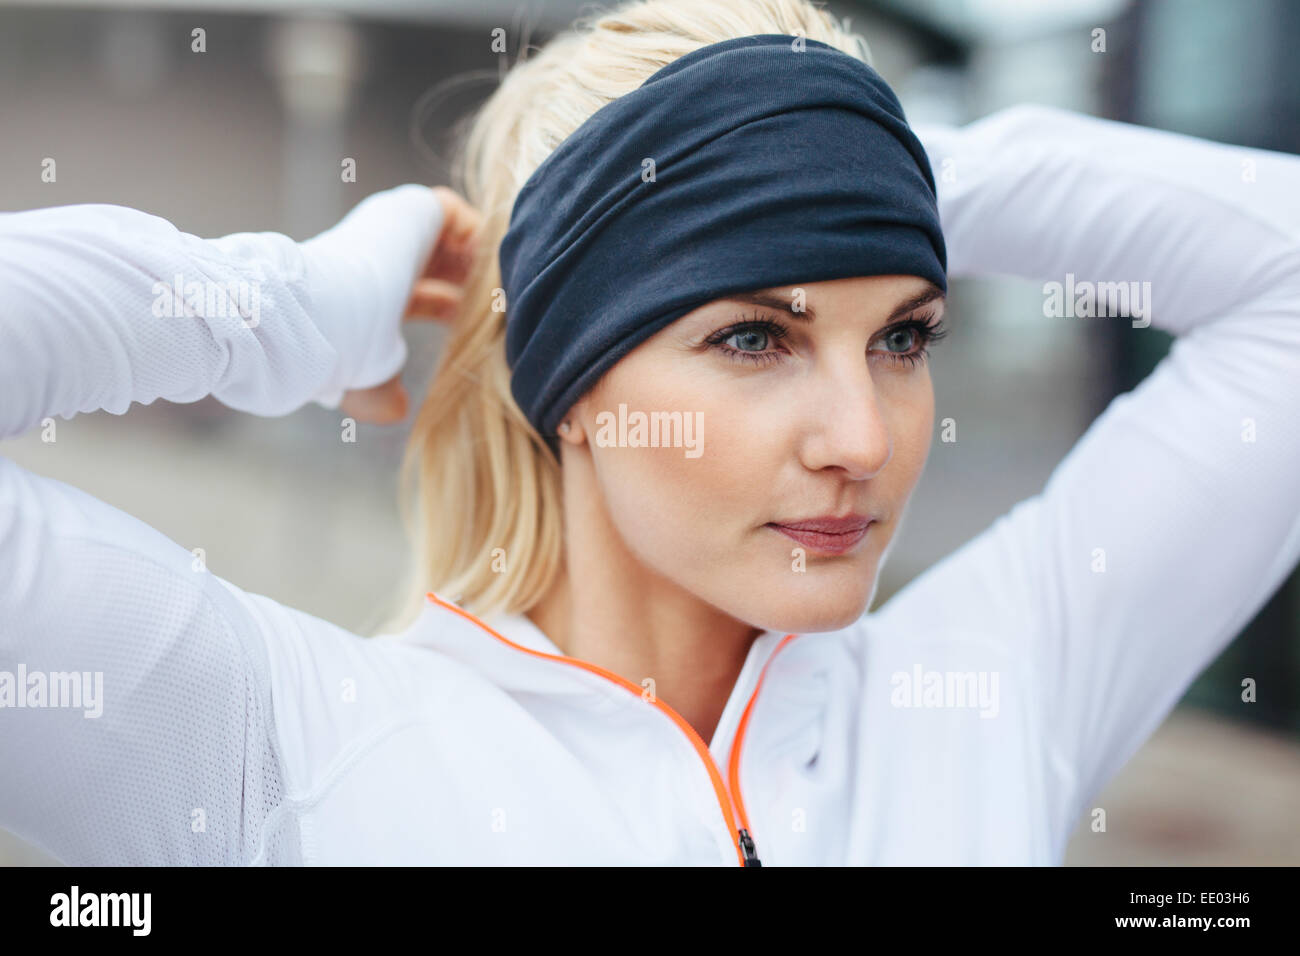 Close-up of young female athlete tying up hair  before a run. Sporty fitness woman on outdoor workout looking motivated. - Stock Image